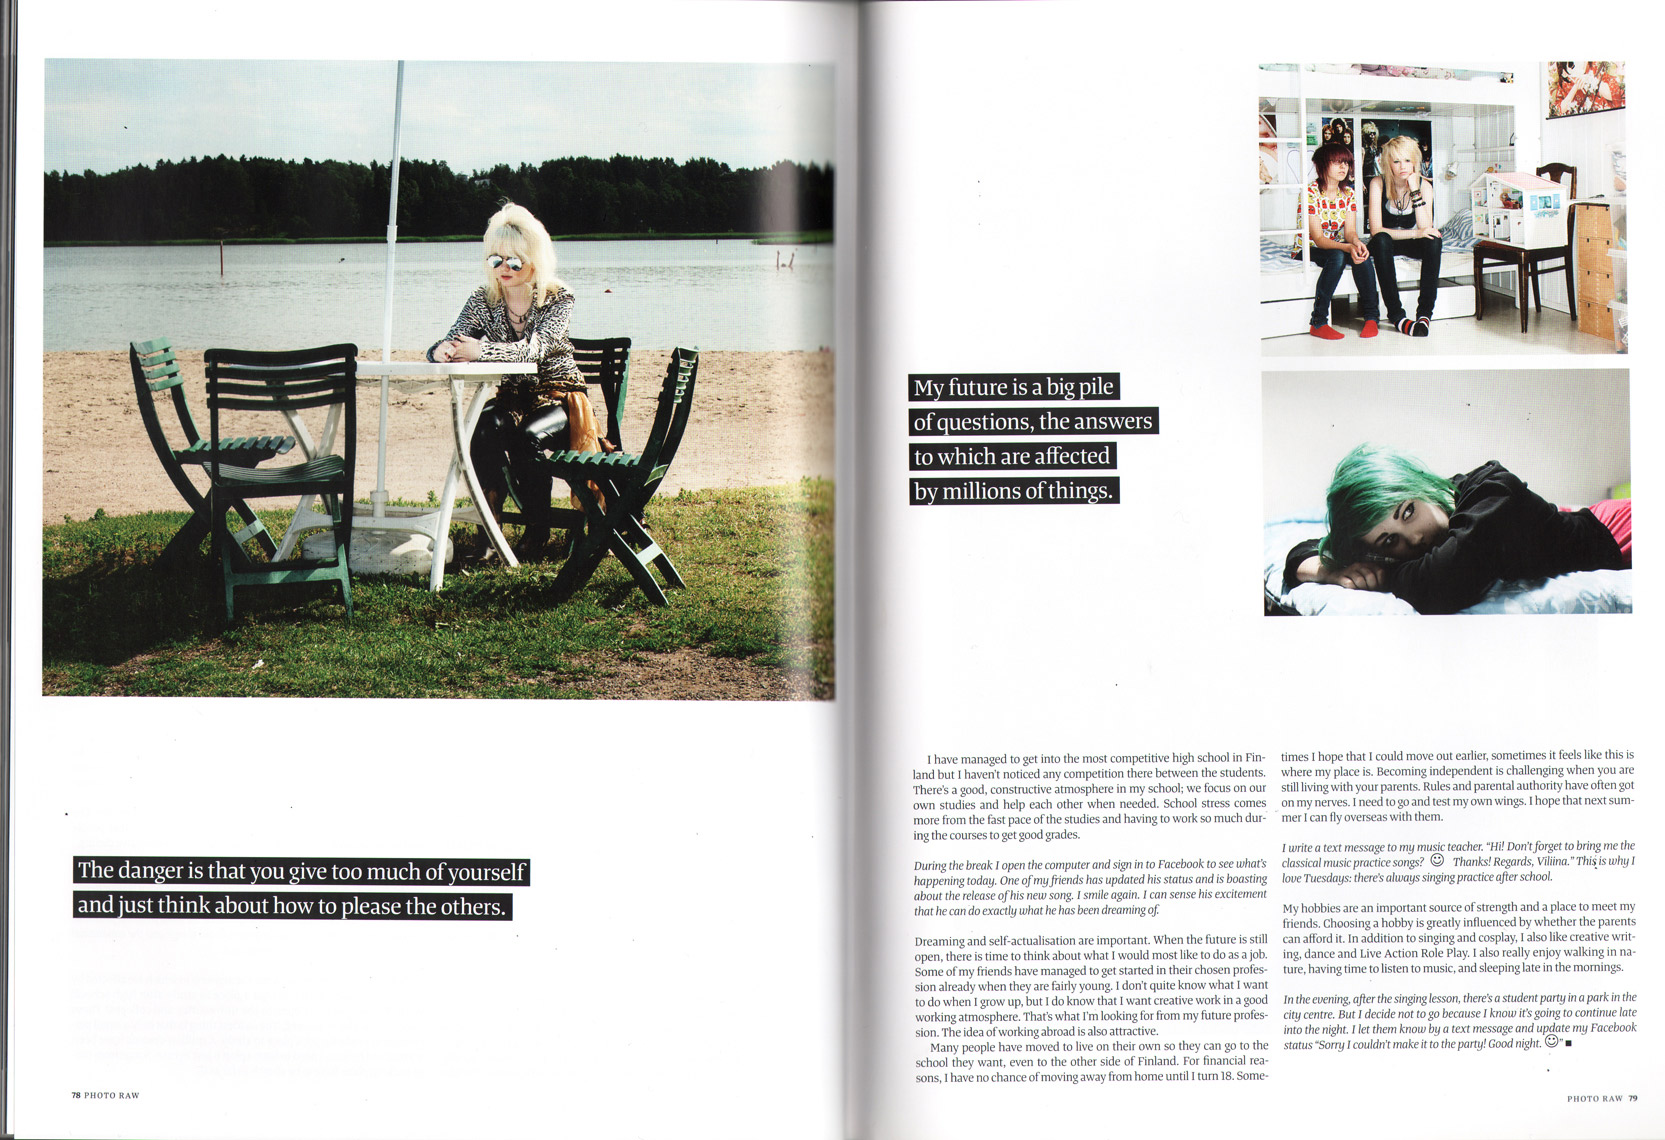 Aki-Pekka Sinikoski: Finnish Teens. Cover story in Photo RAW magazine.